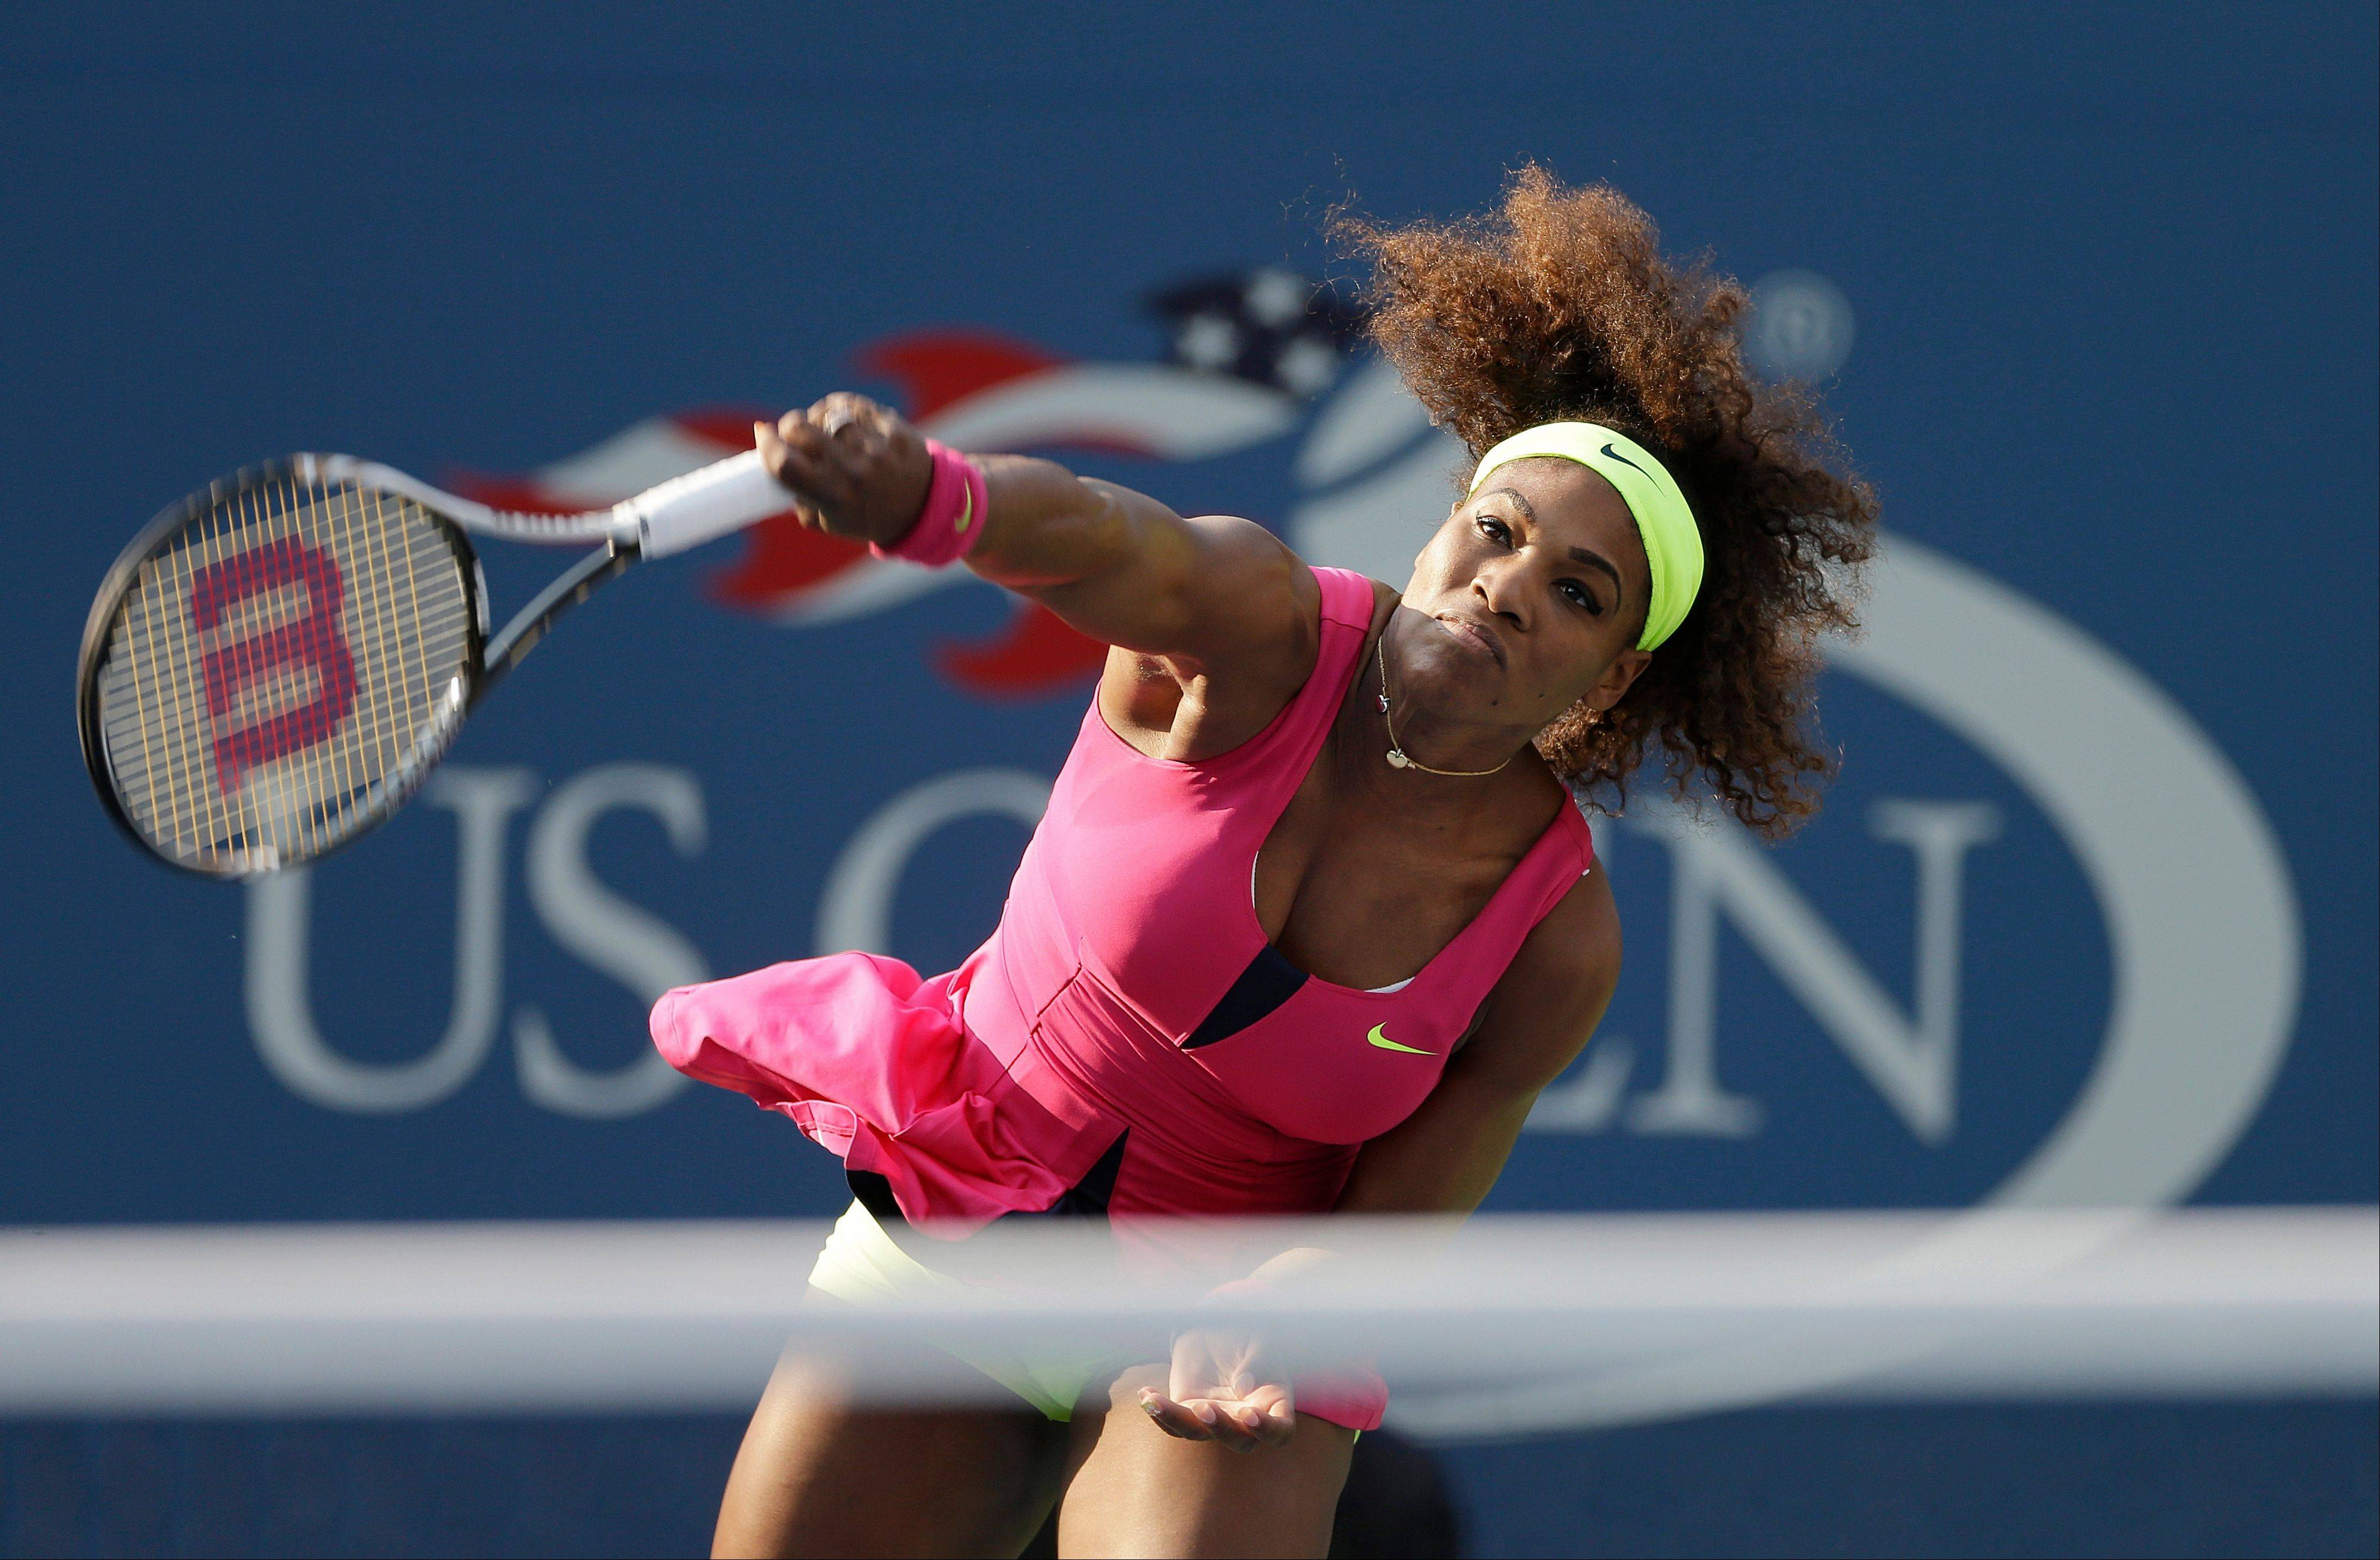 Serena Williams, defending U.S. Open champion, is seeded No. 1 in this year's tournament.